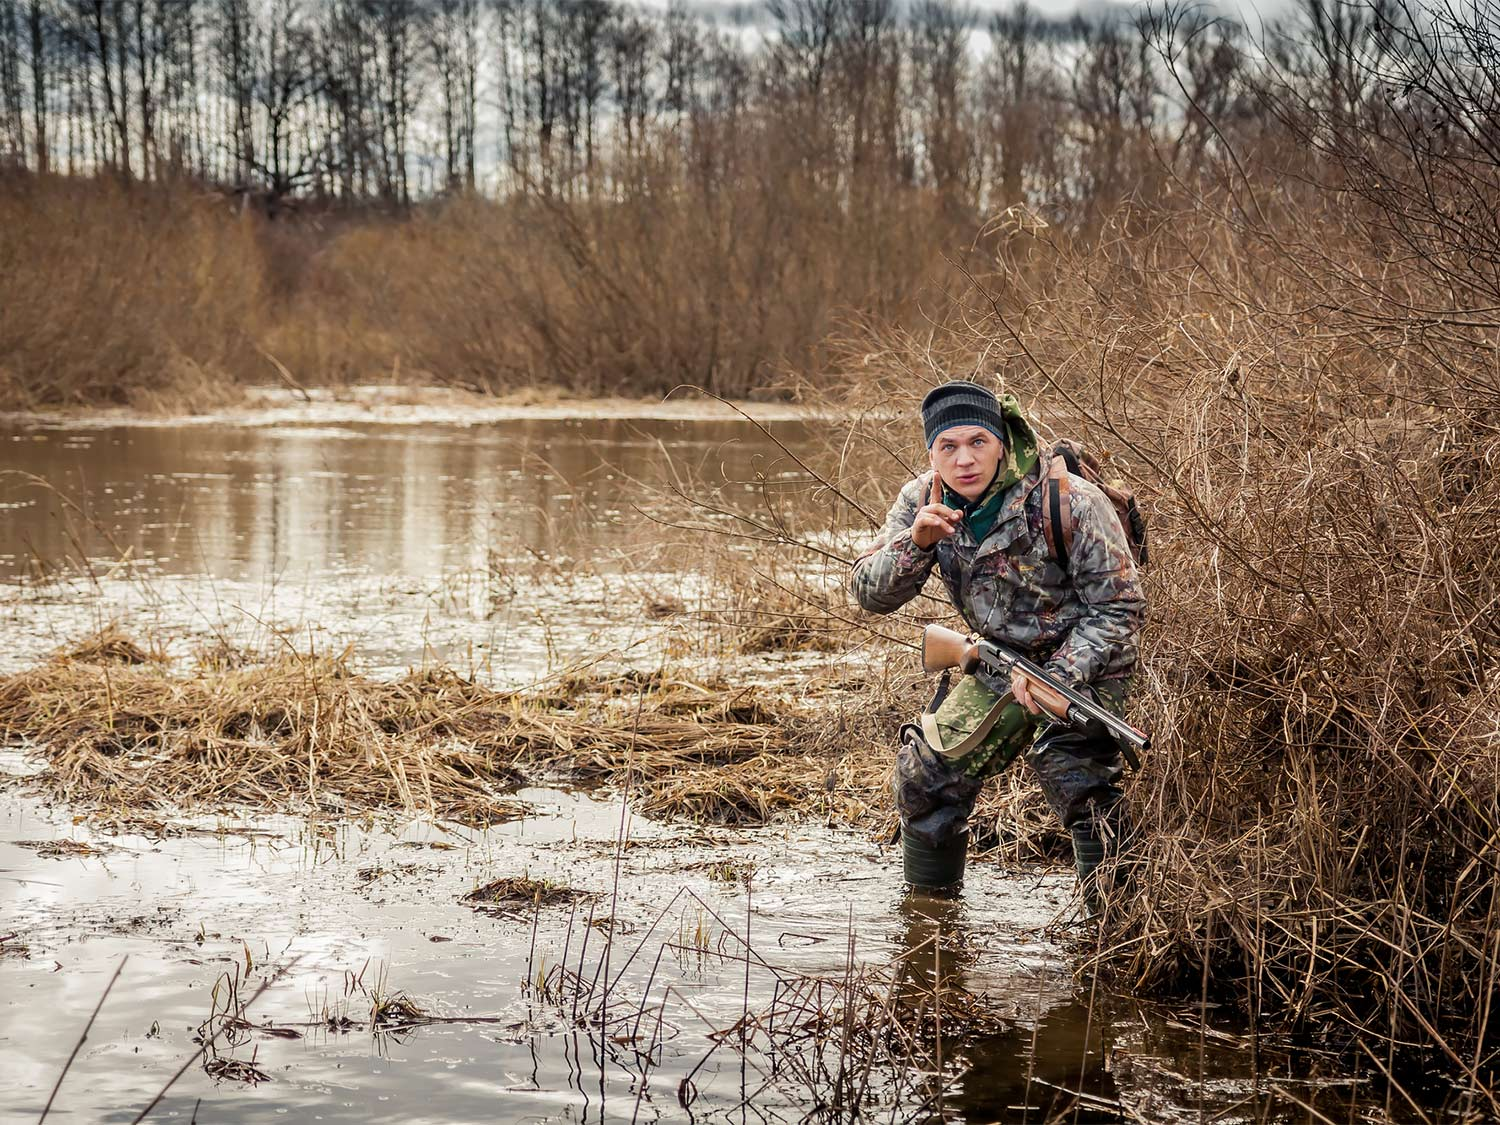 A hunter in camo stands near a brushline on a lake while holding a shotgun.